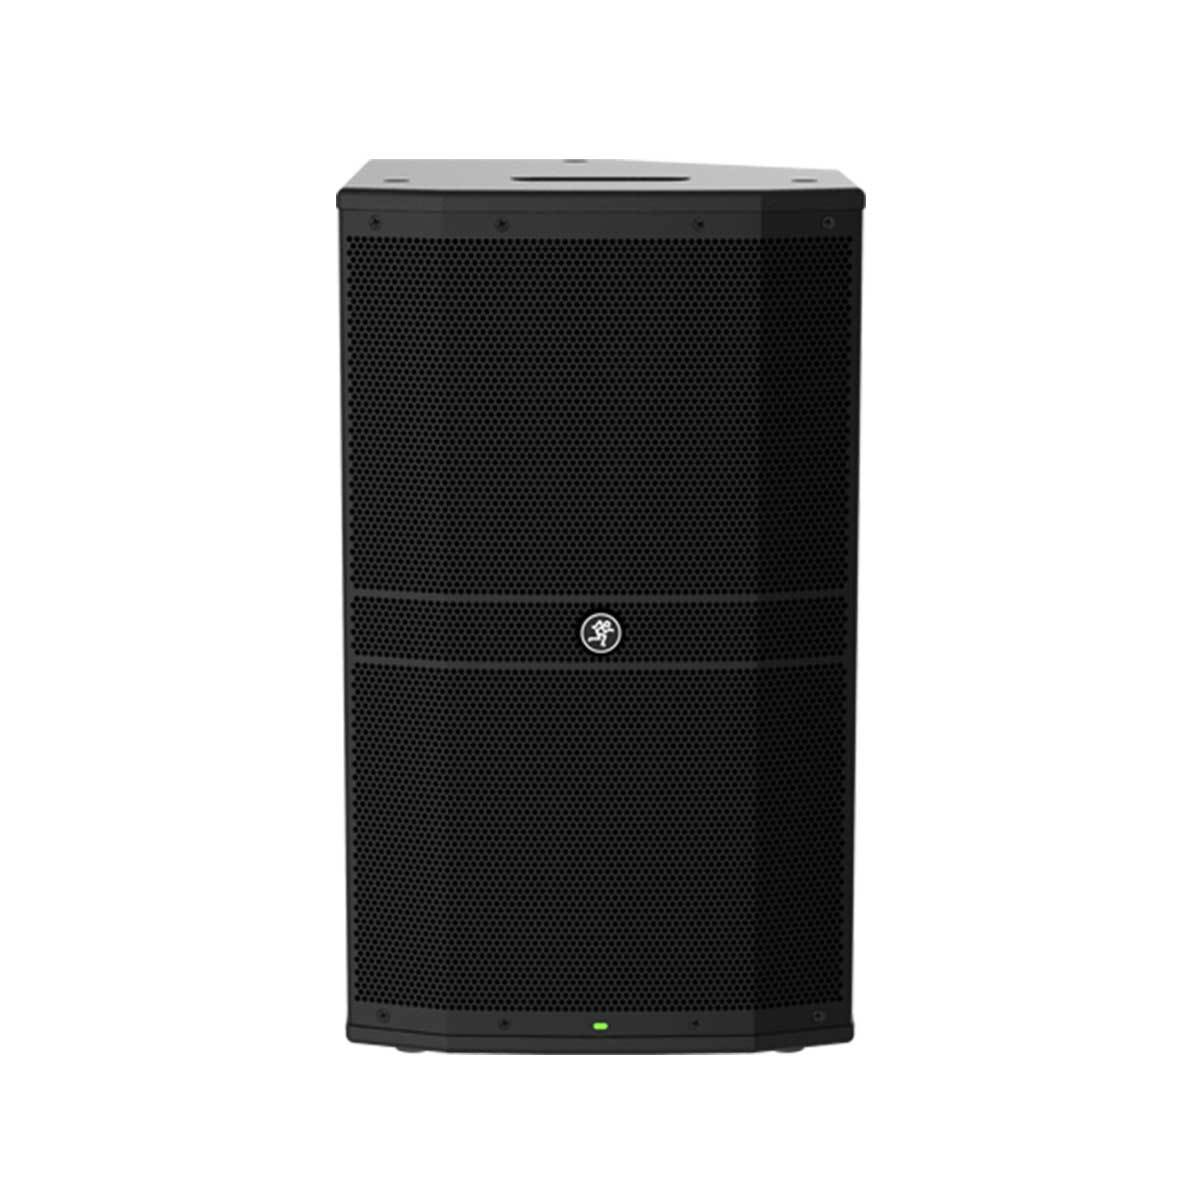 "Powered PA Speakers - MACKIE DRM212 1600W 12"" Professional Powered Loudspeaker"